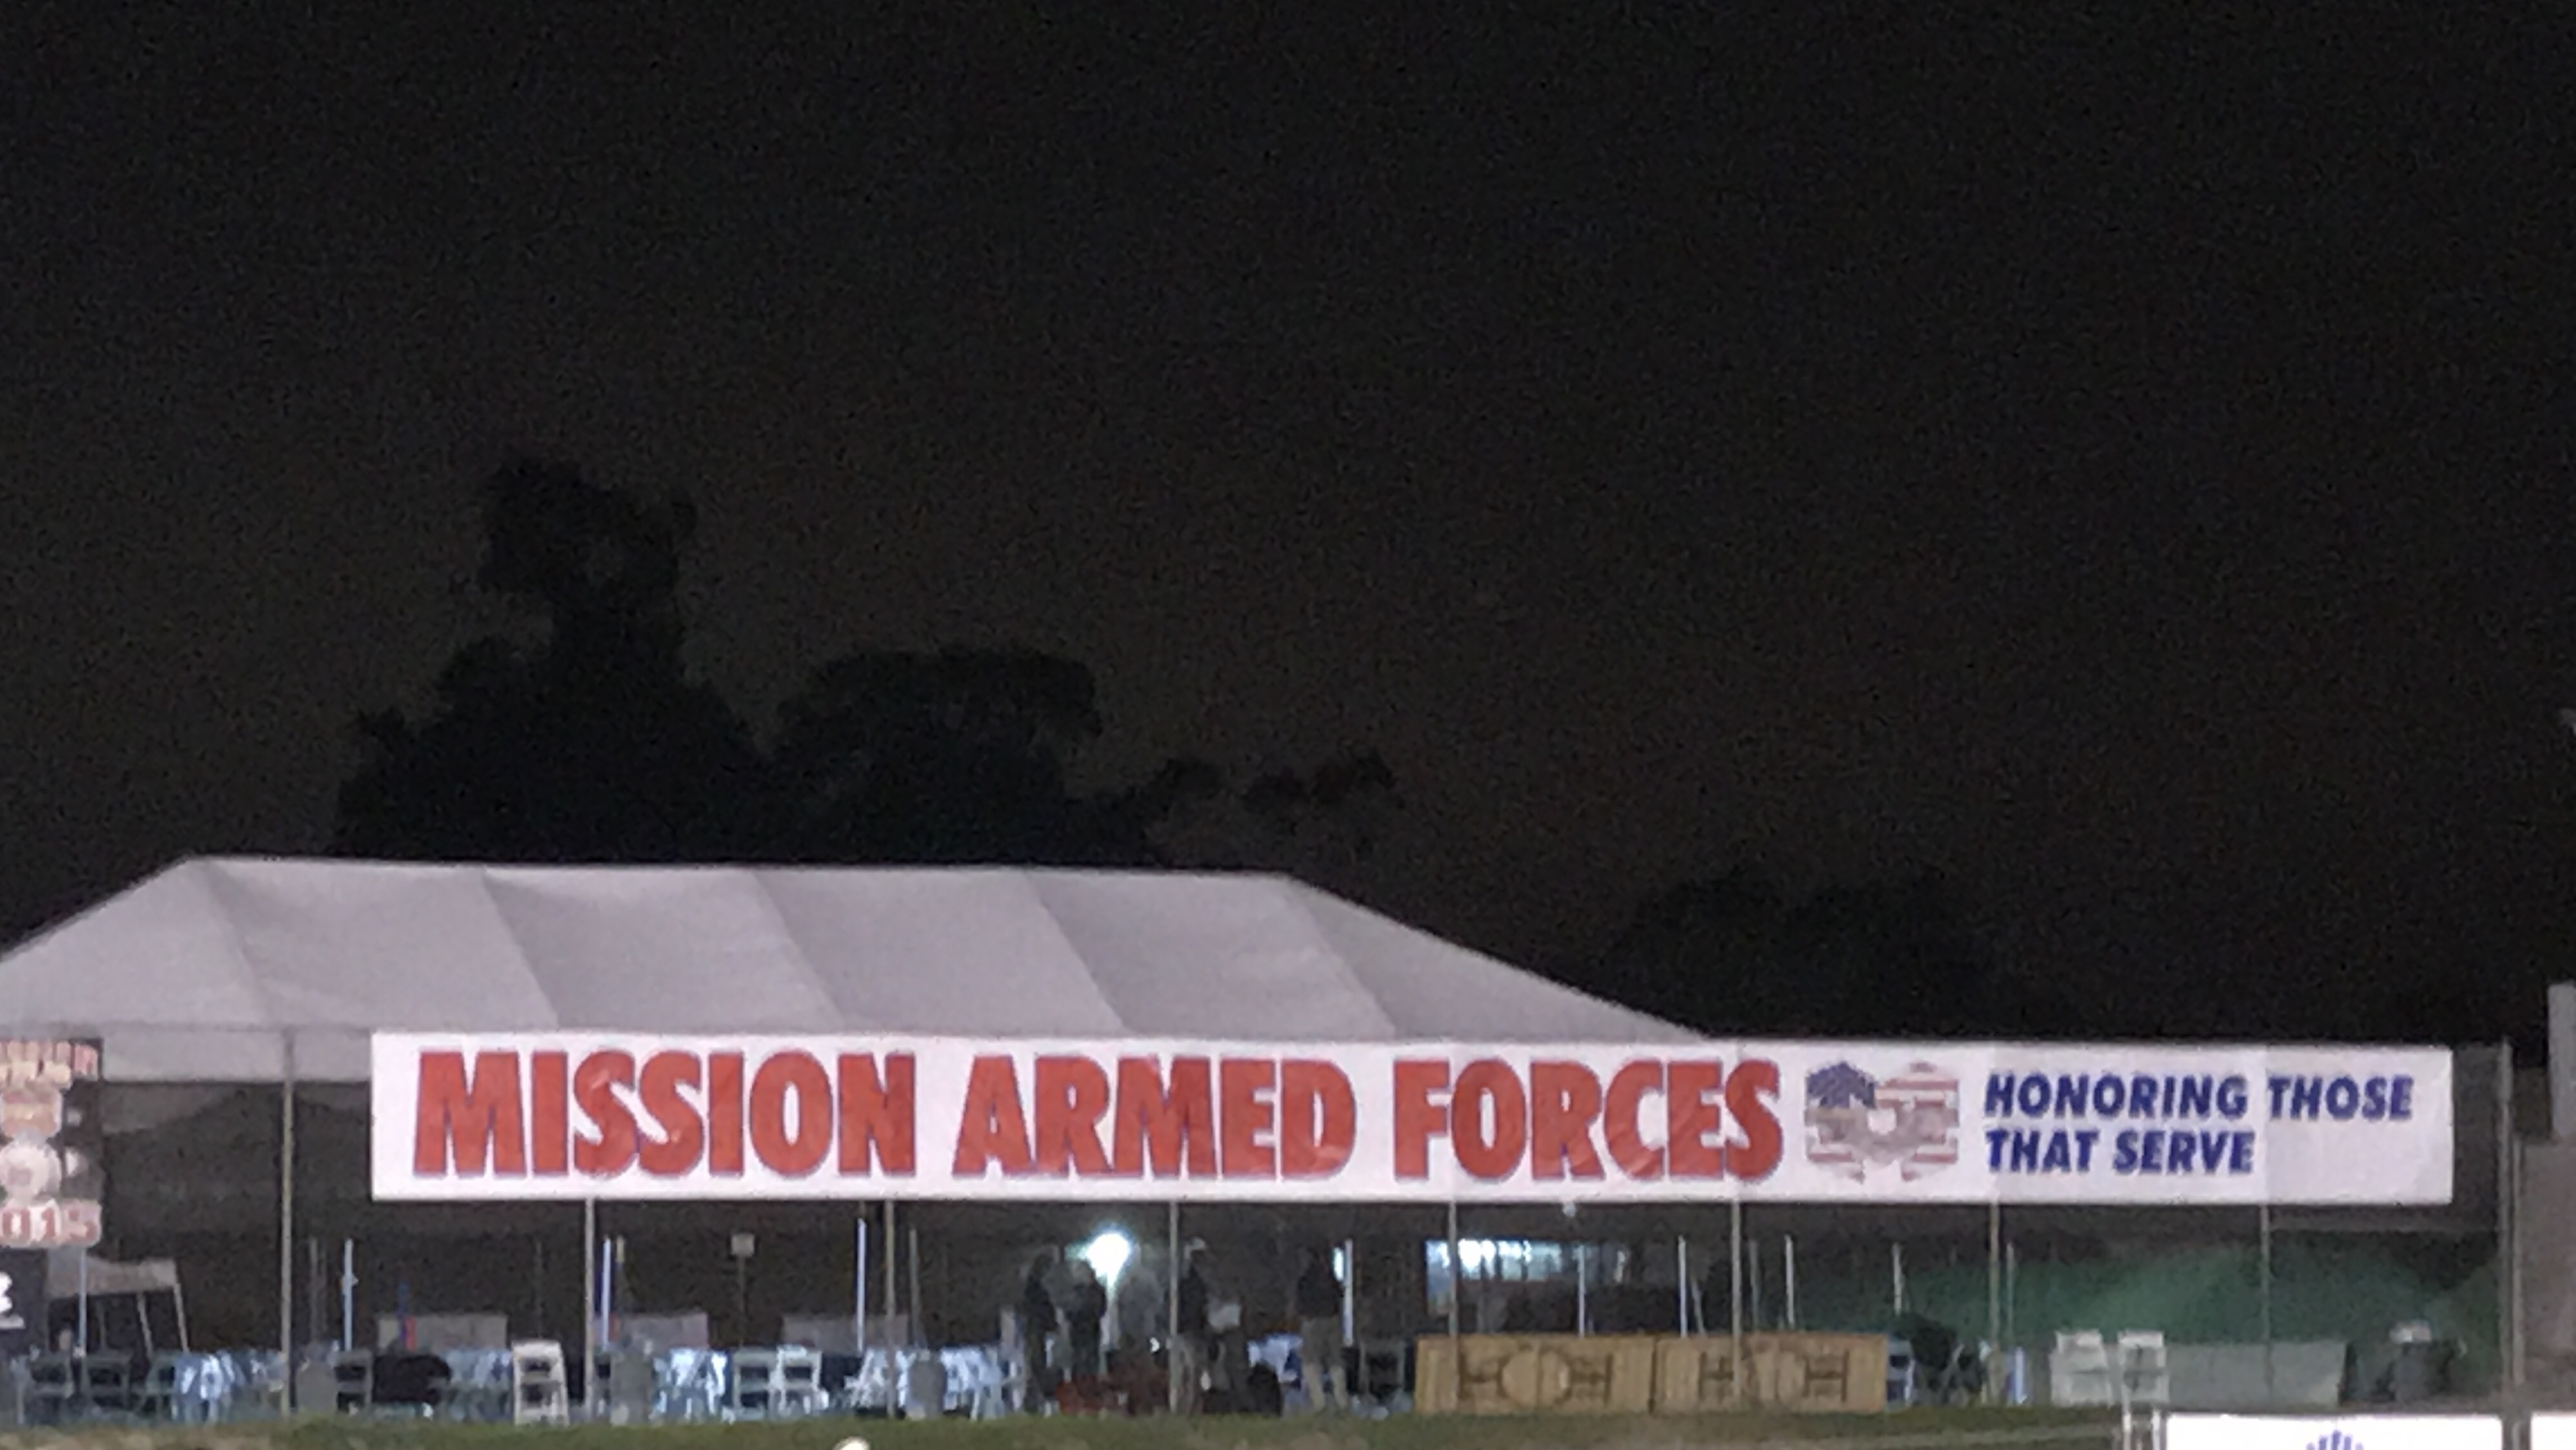 Mission Armed Forces 2018